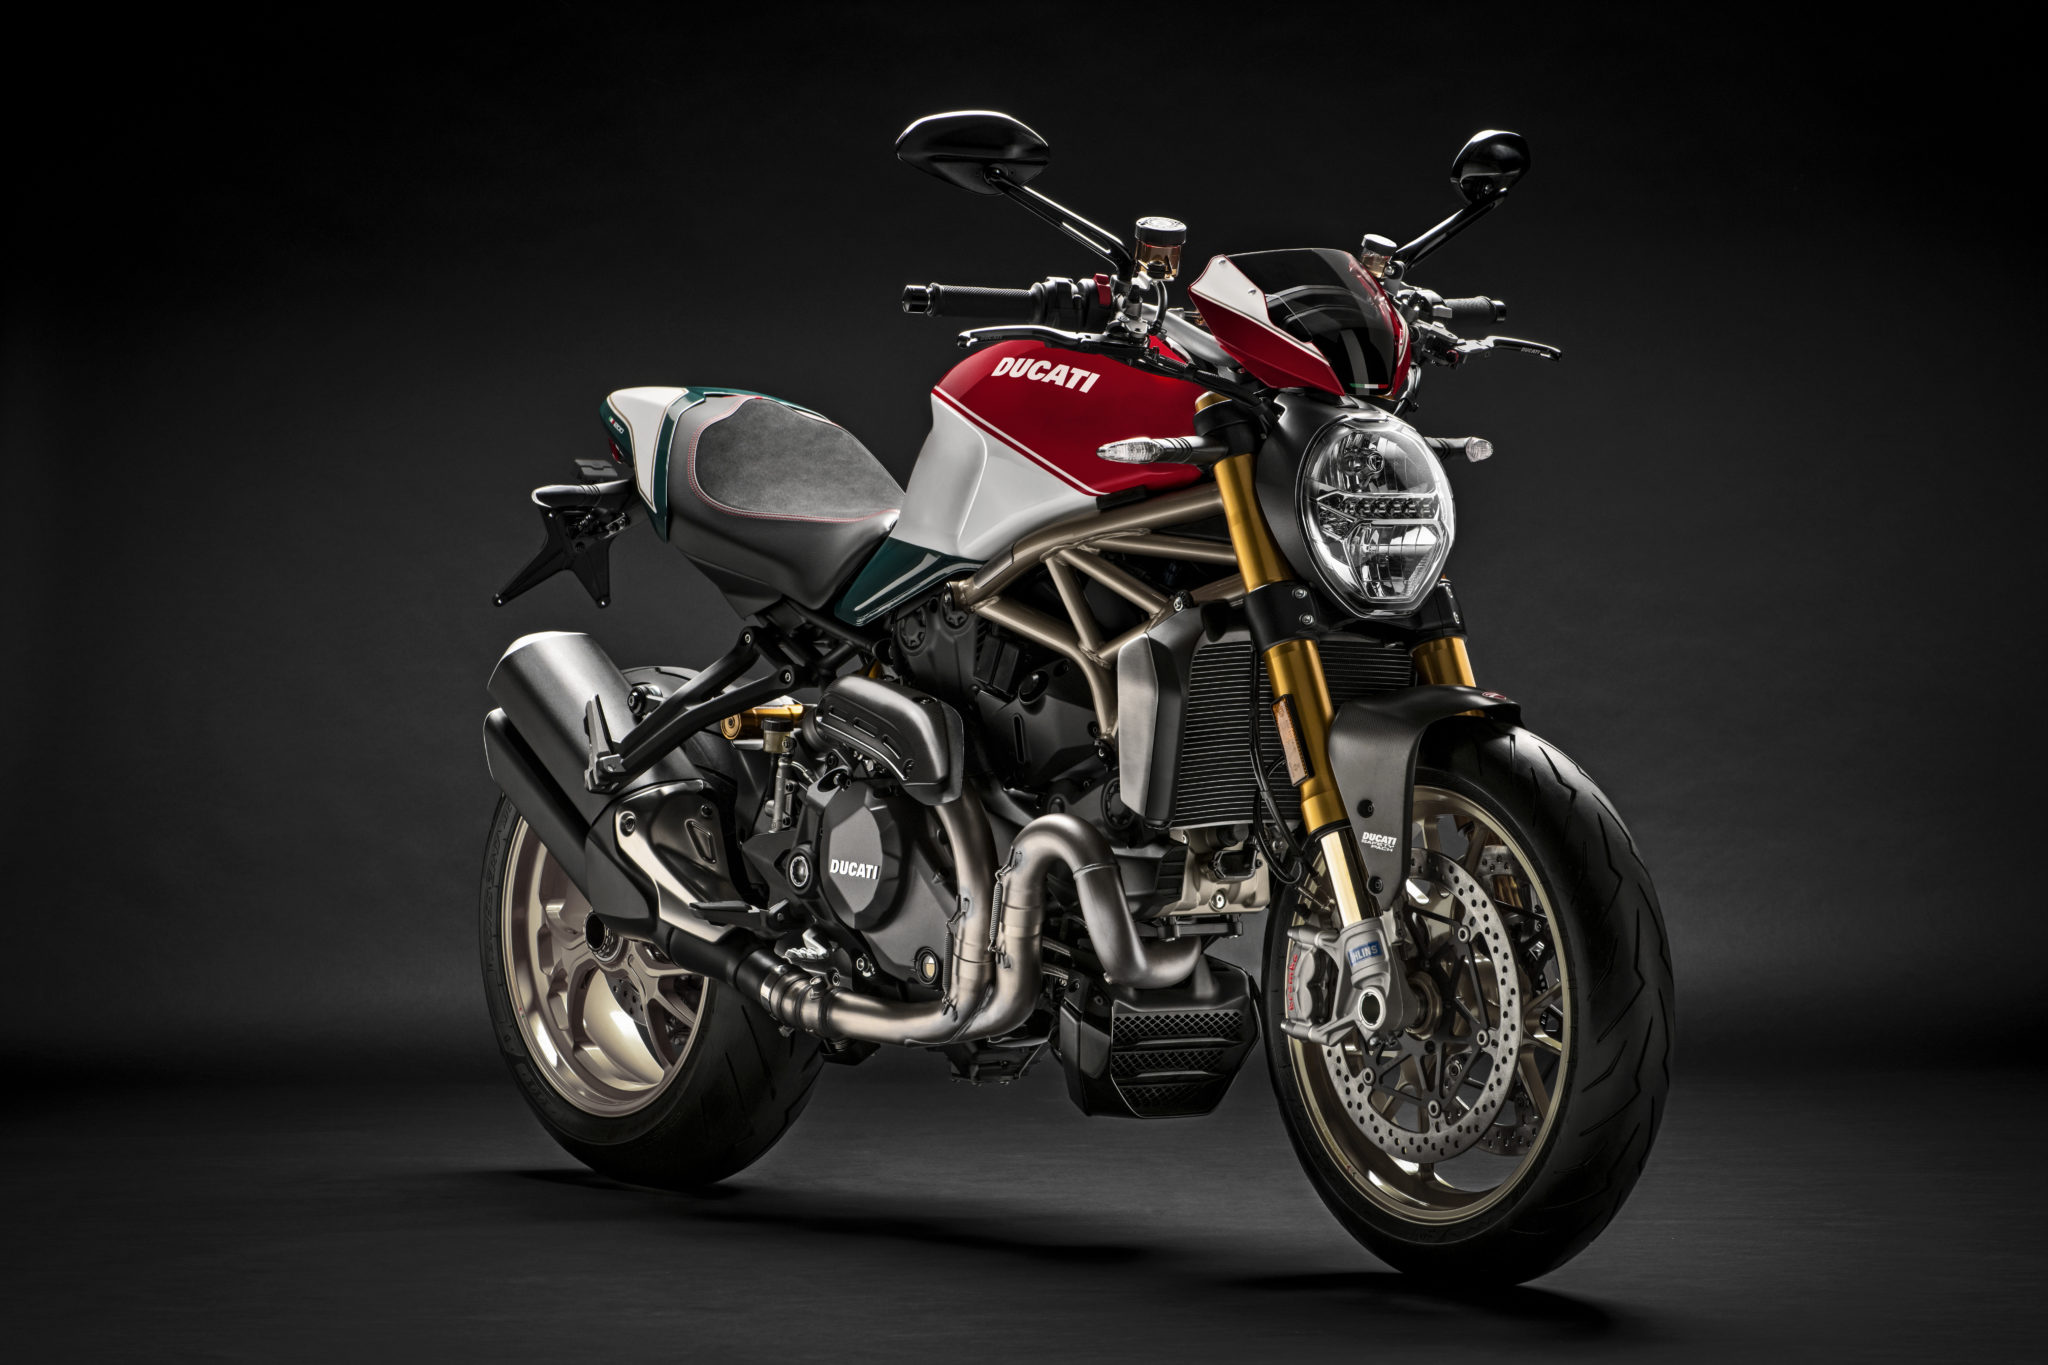 Ducati reveals the most precious Monster ever!